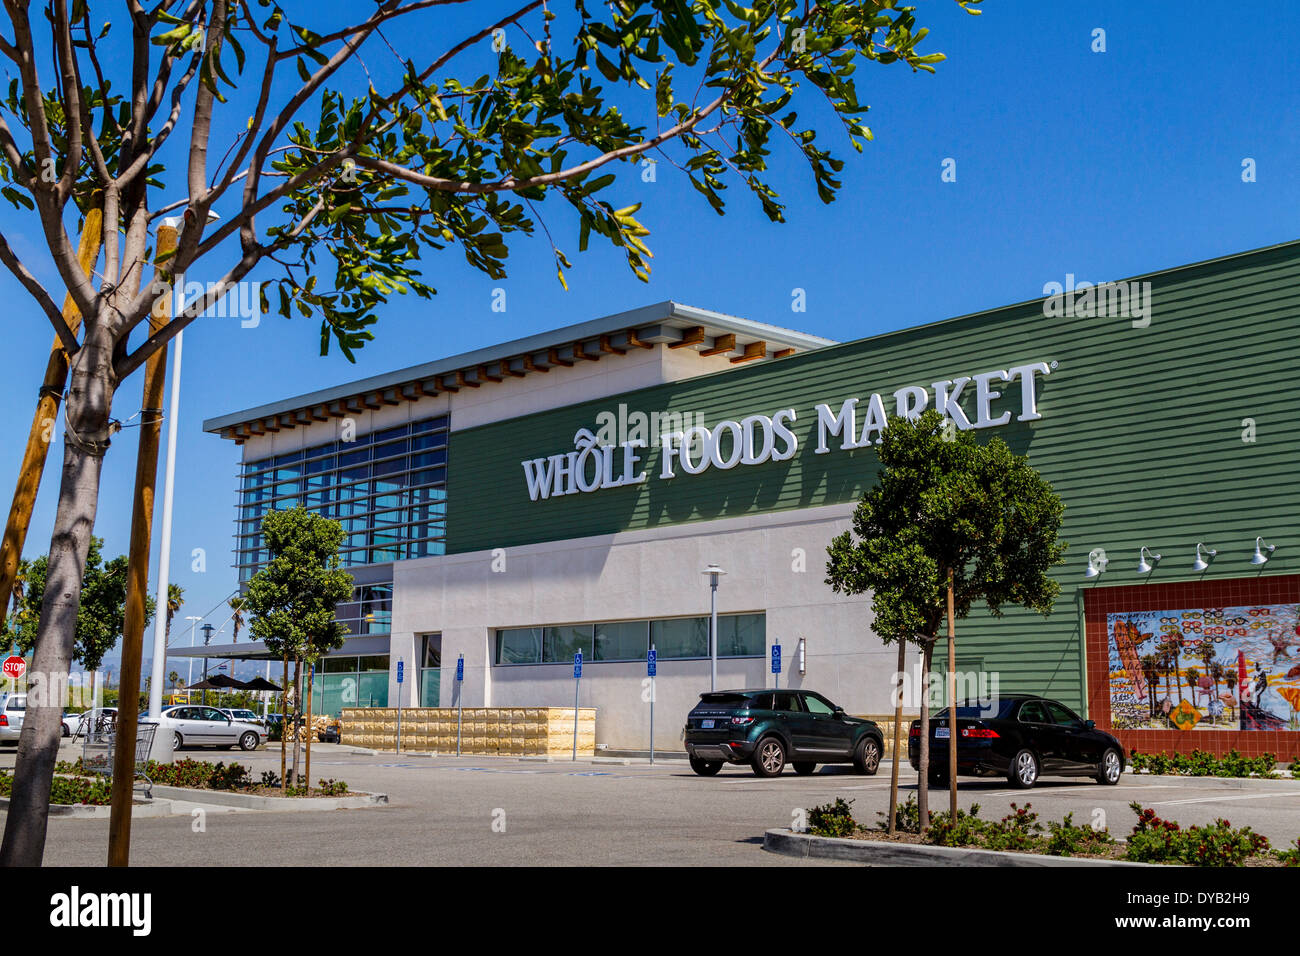 Whole Foods Camarillo